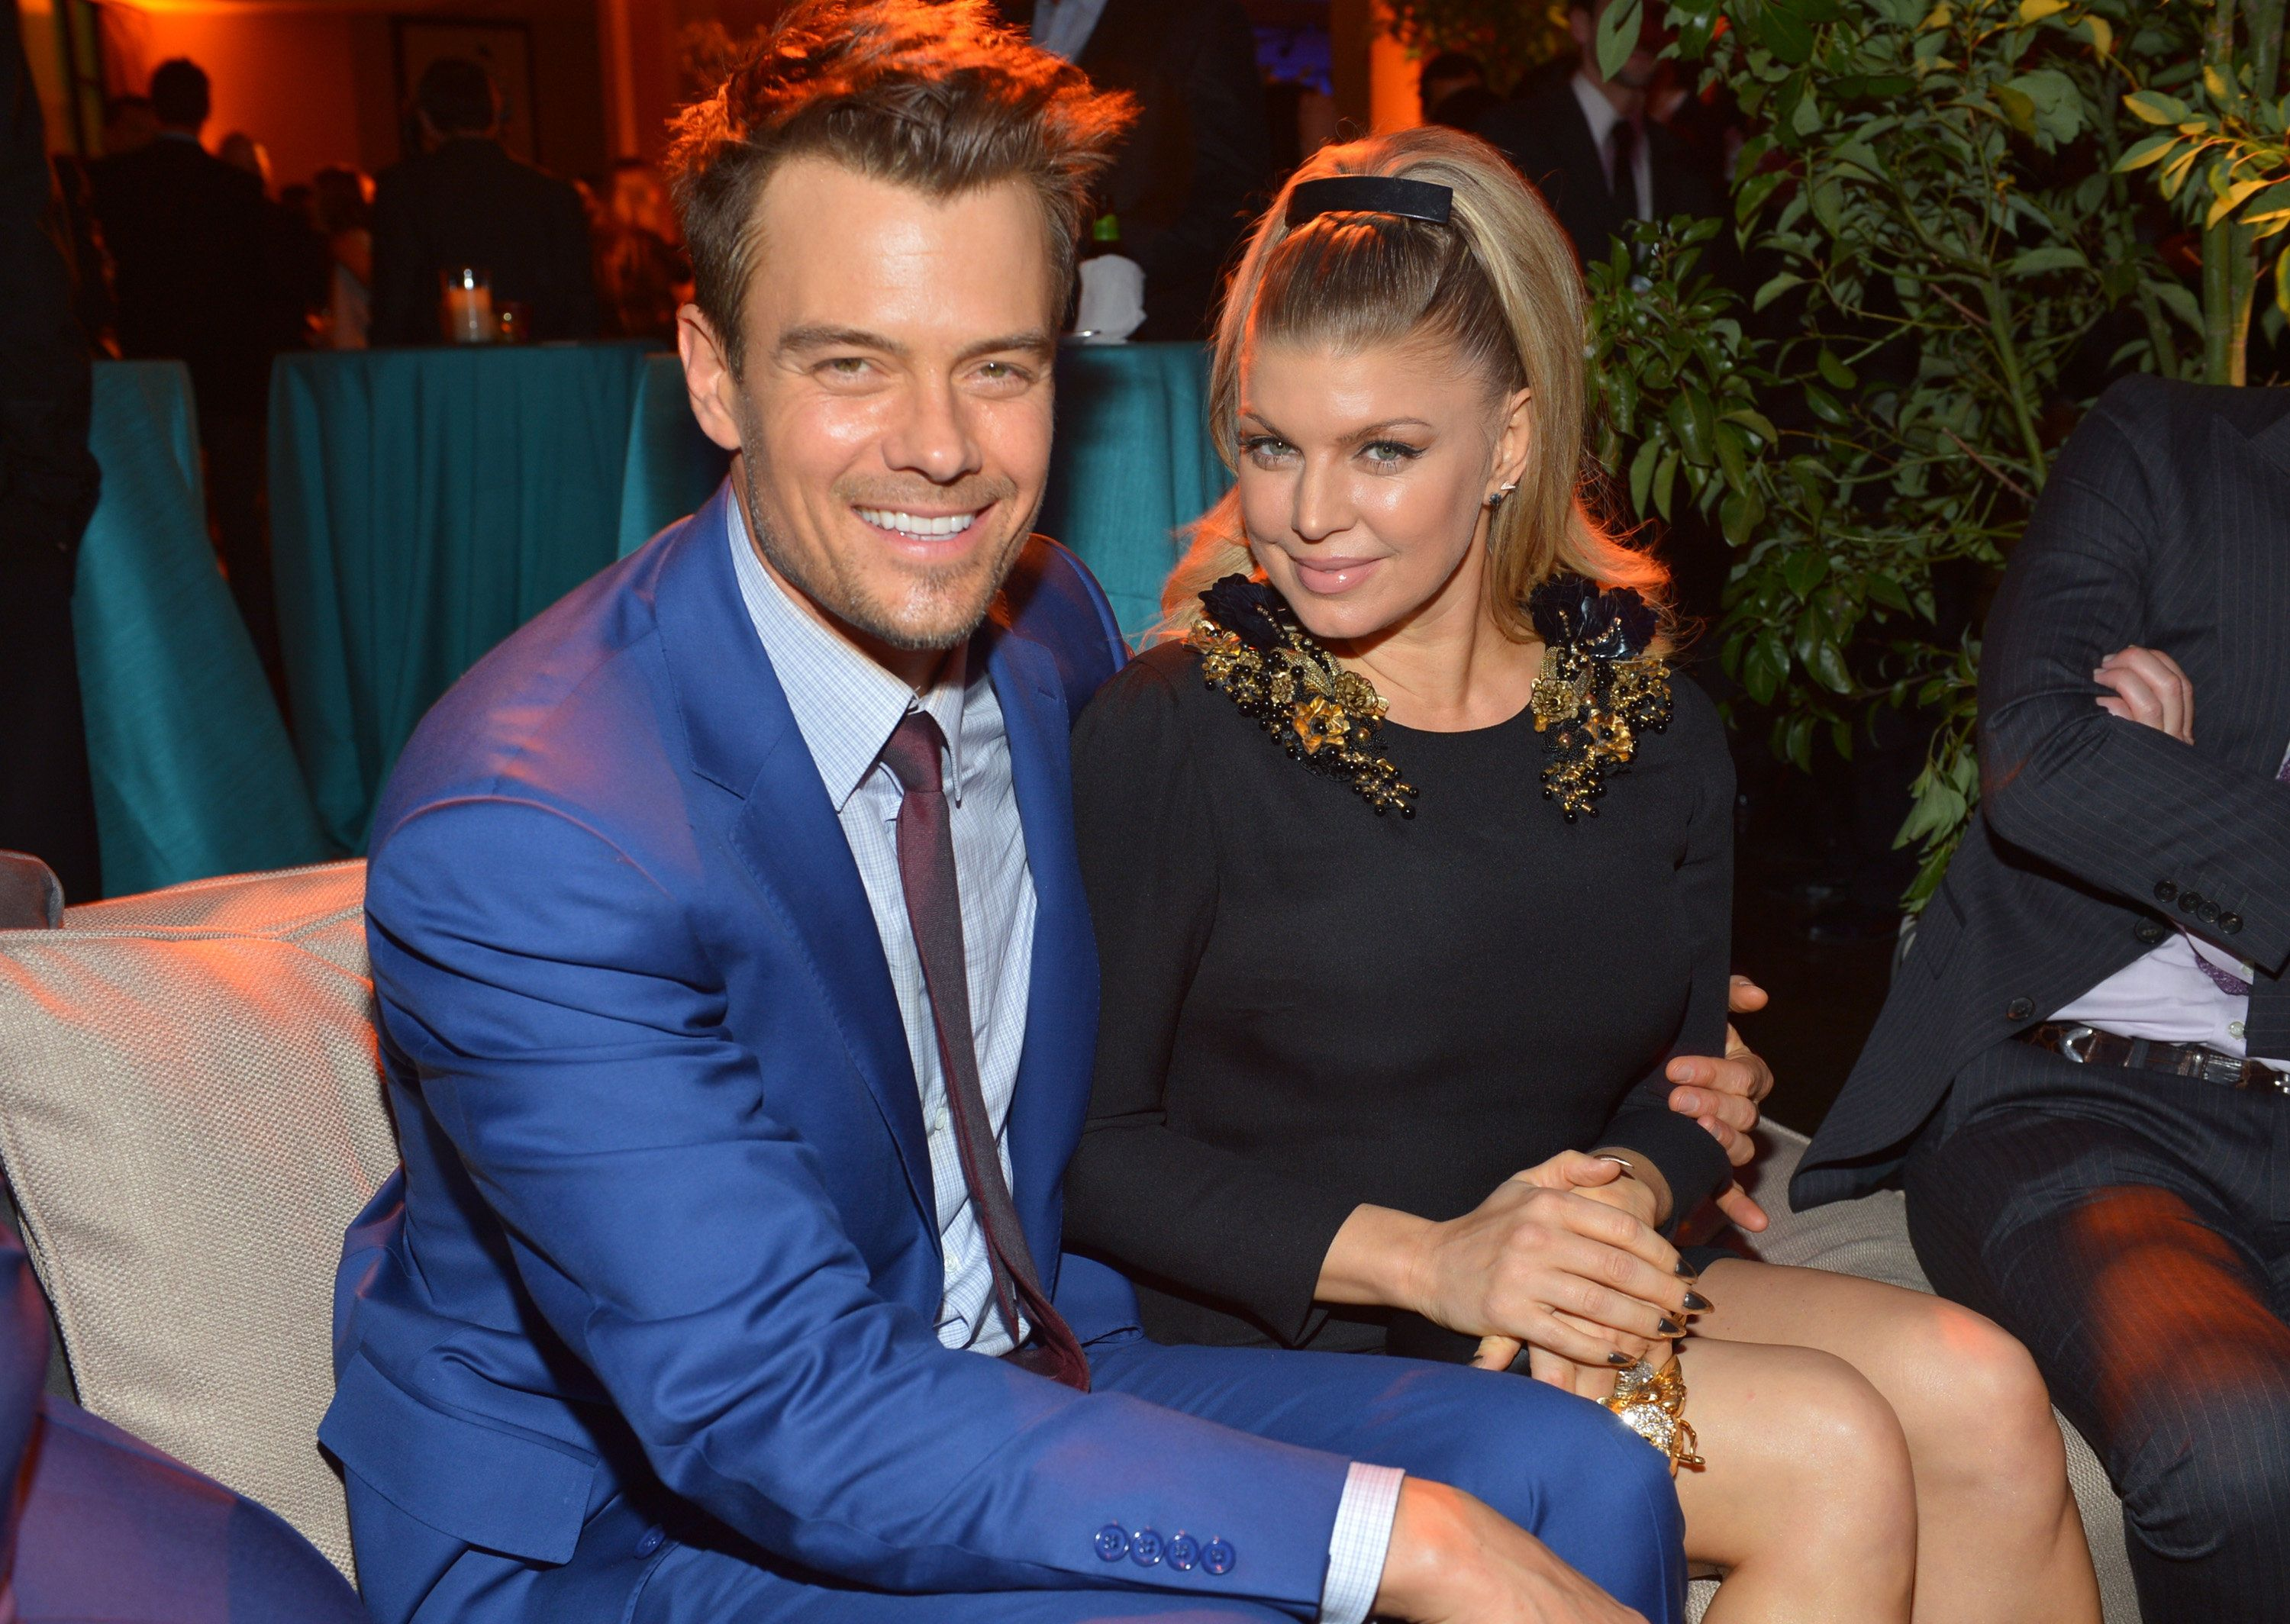 Fergie And Josh Duhamel Split After 8 Years Of